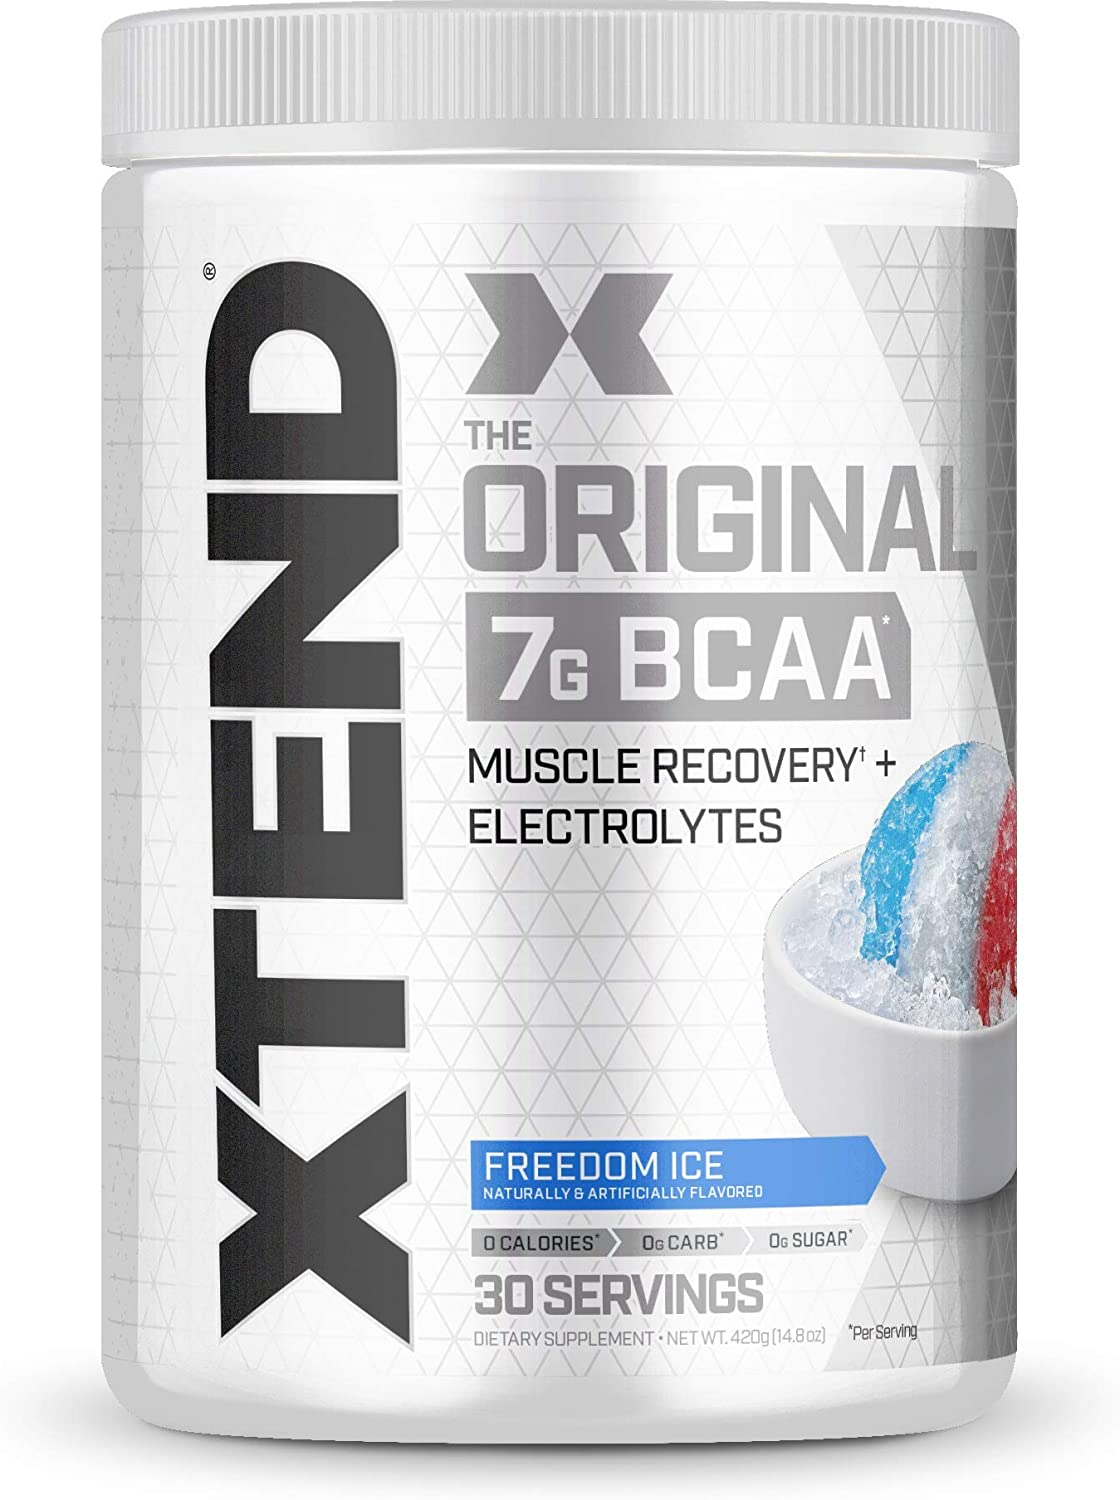 Xtend Original Bcaa Powder Freedom Ice Sugar Free Post Workout Muscle Recovery Drink with Amino Acids 7g bcaas for Men Women 30 Servings